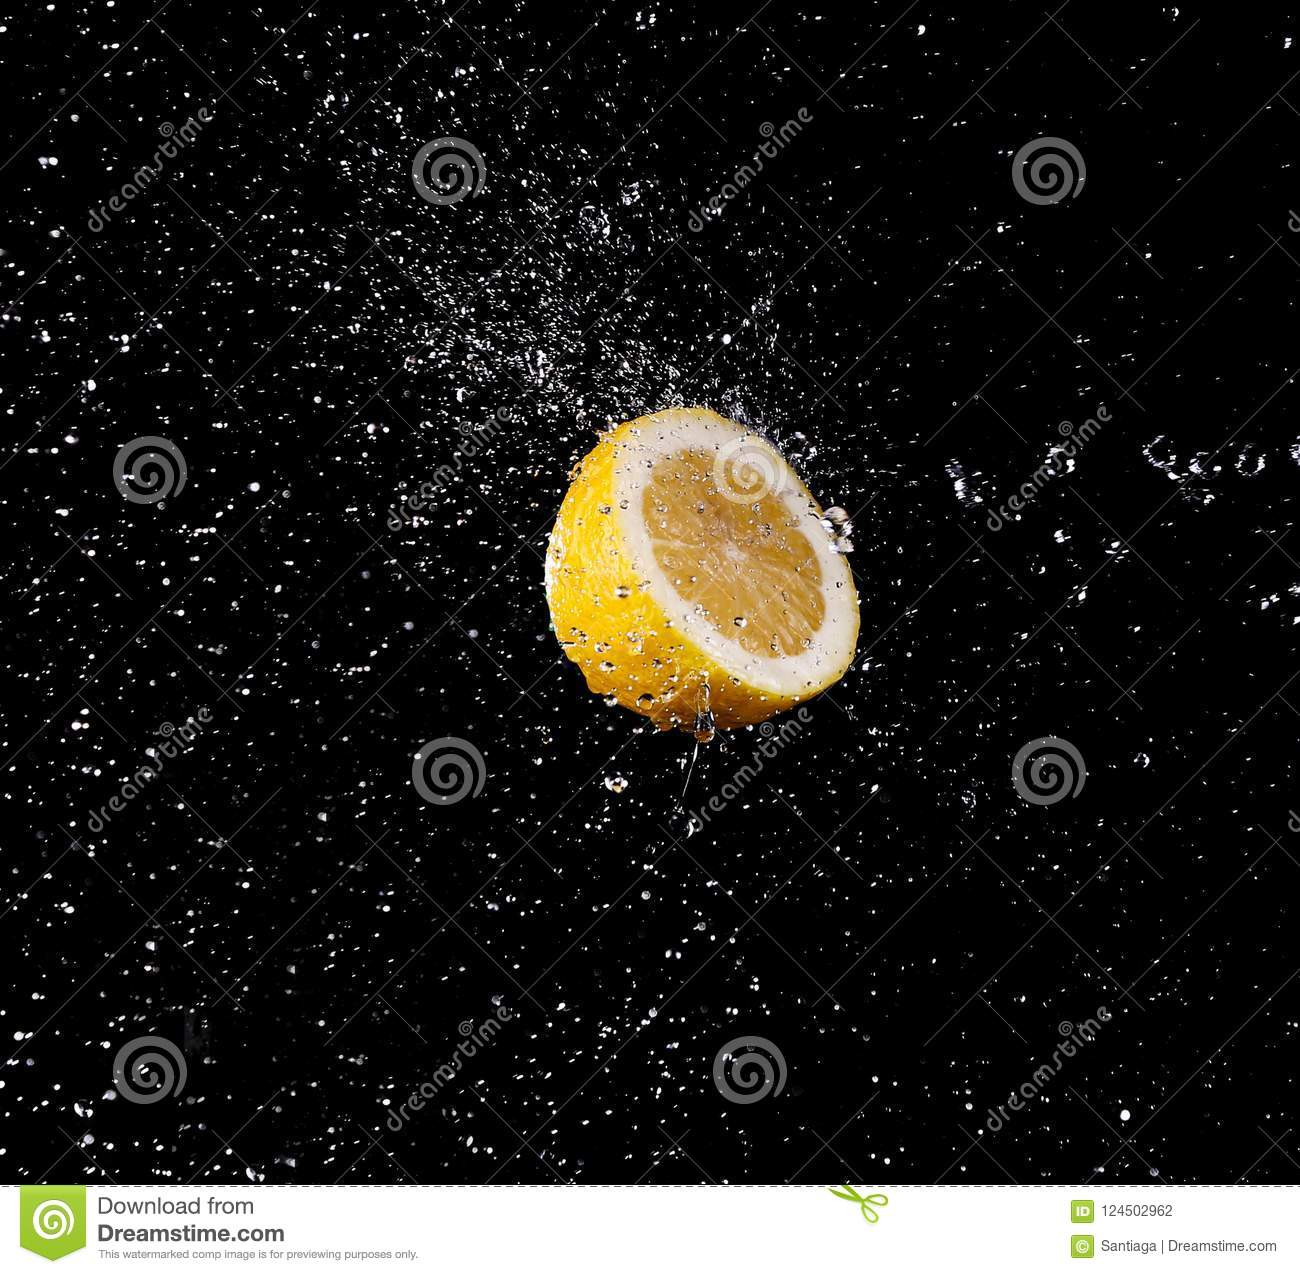 Water drops splashing onto a lemon